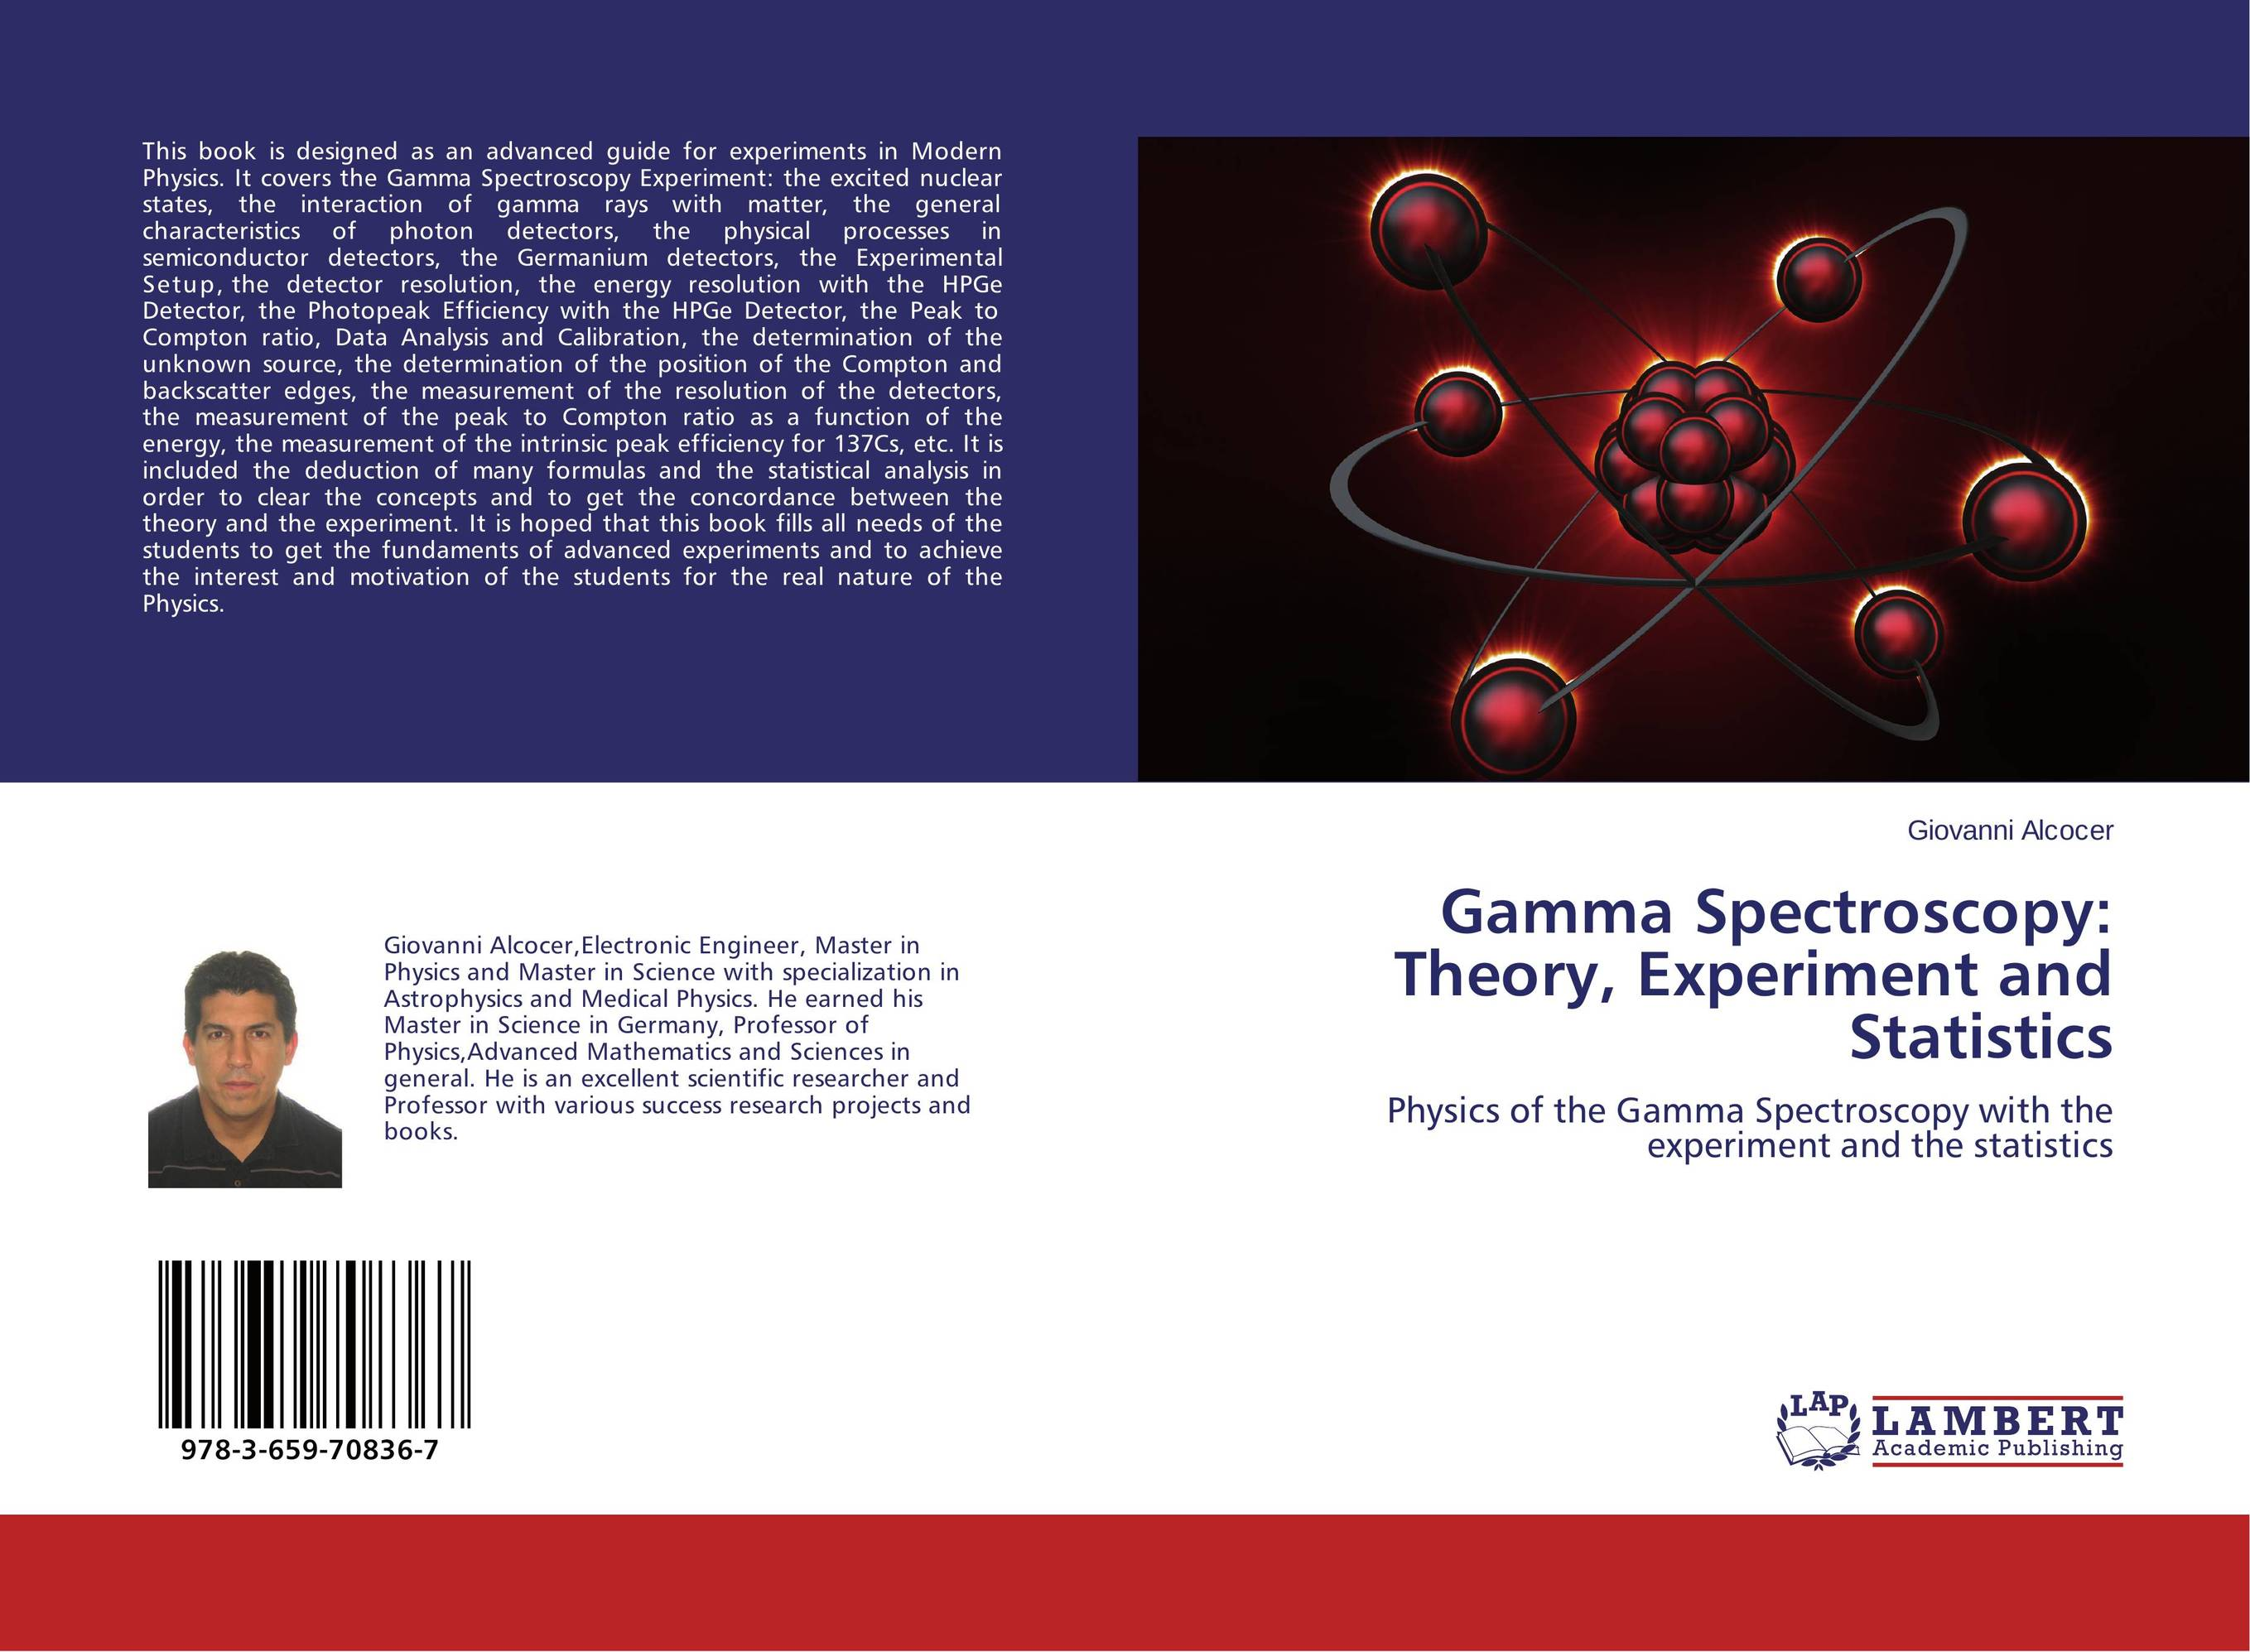 Gamma Spectroscopy: Theory, Experiment and Statistics the silmarillion